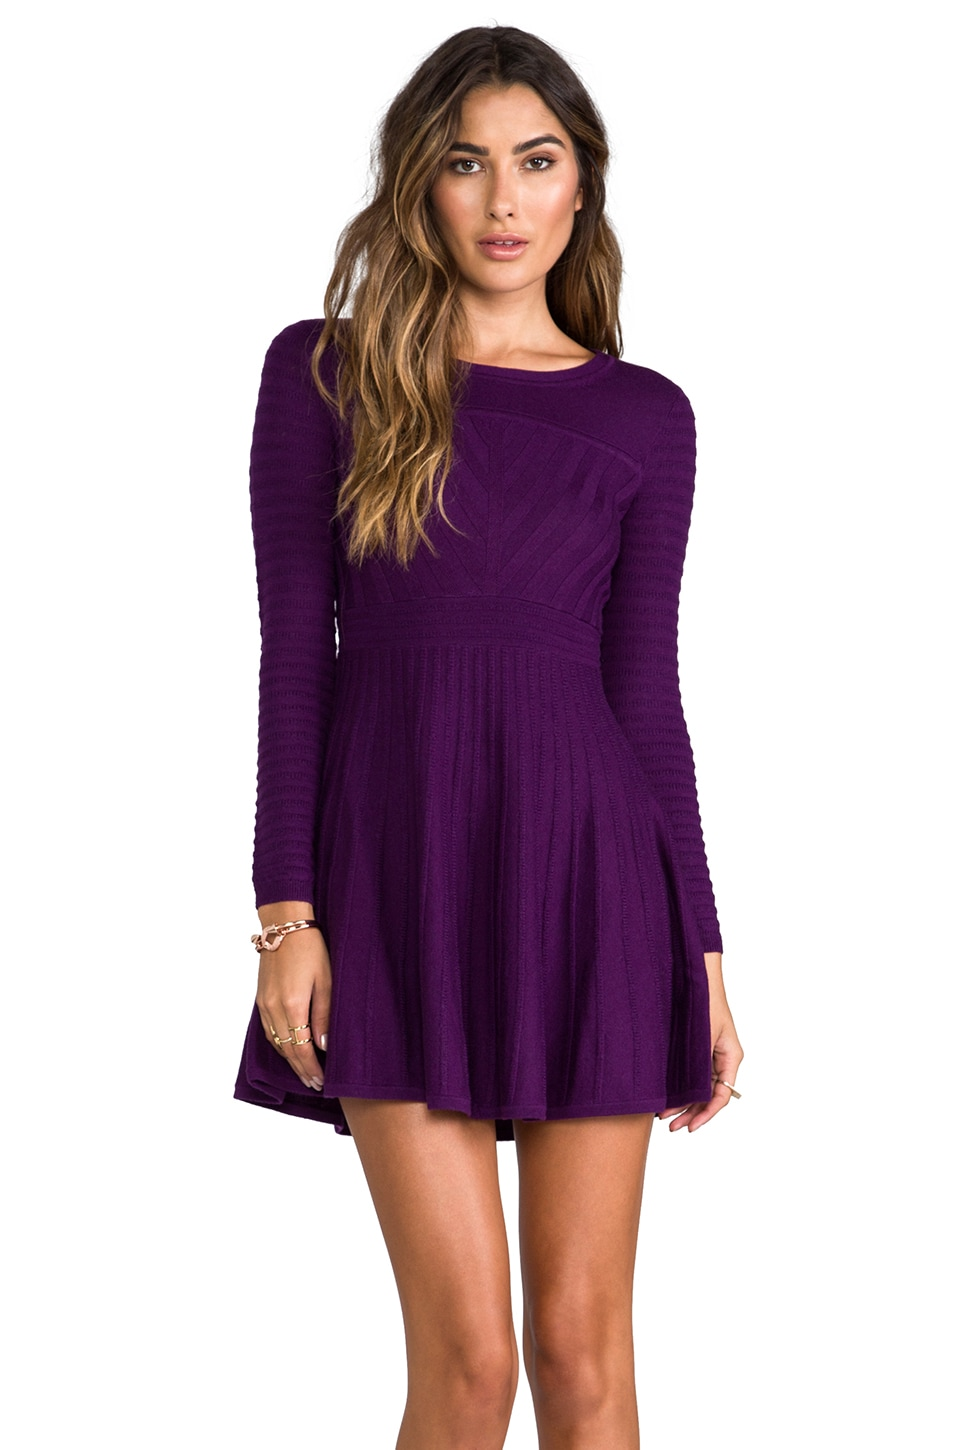 Shoshanna 3/4 Sleeve Margot Sweater Dress in Amethyst